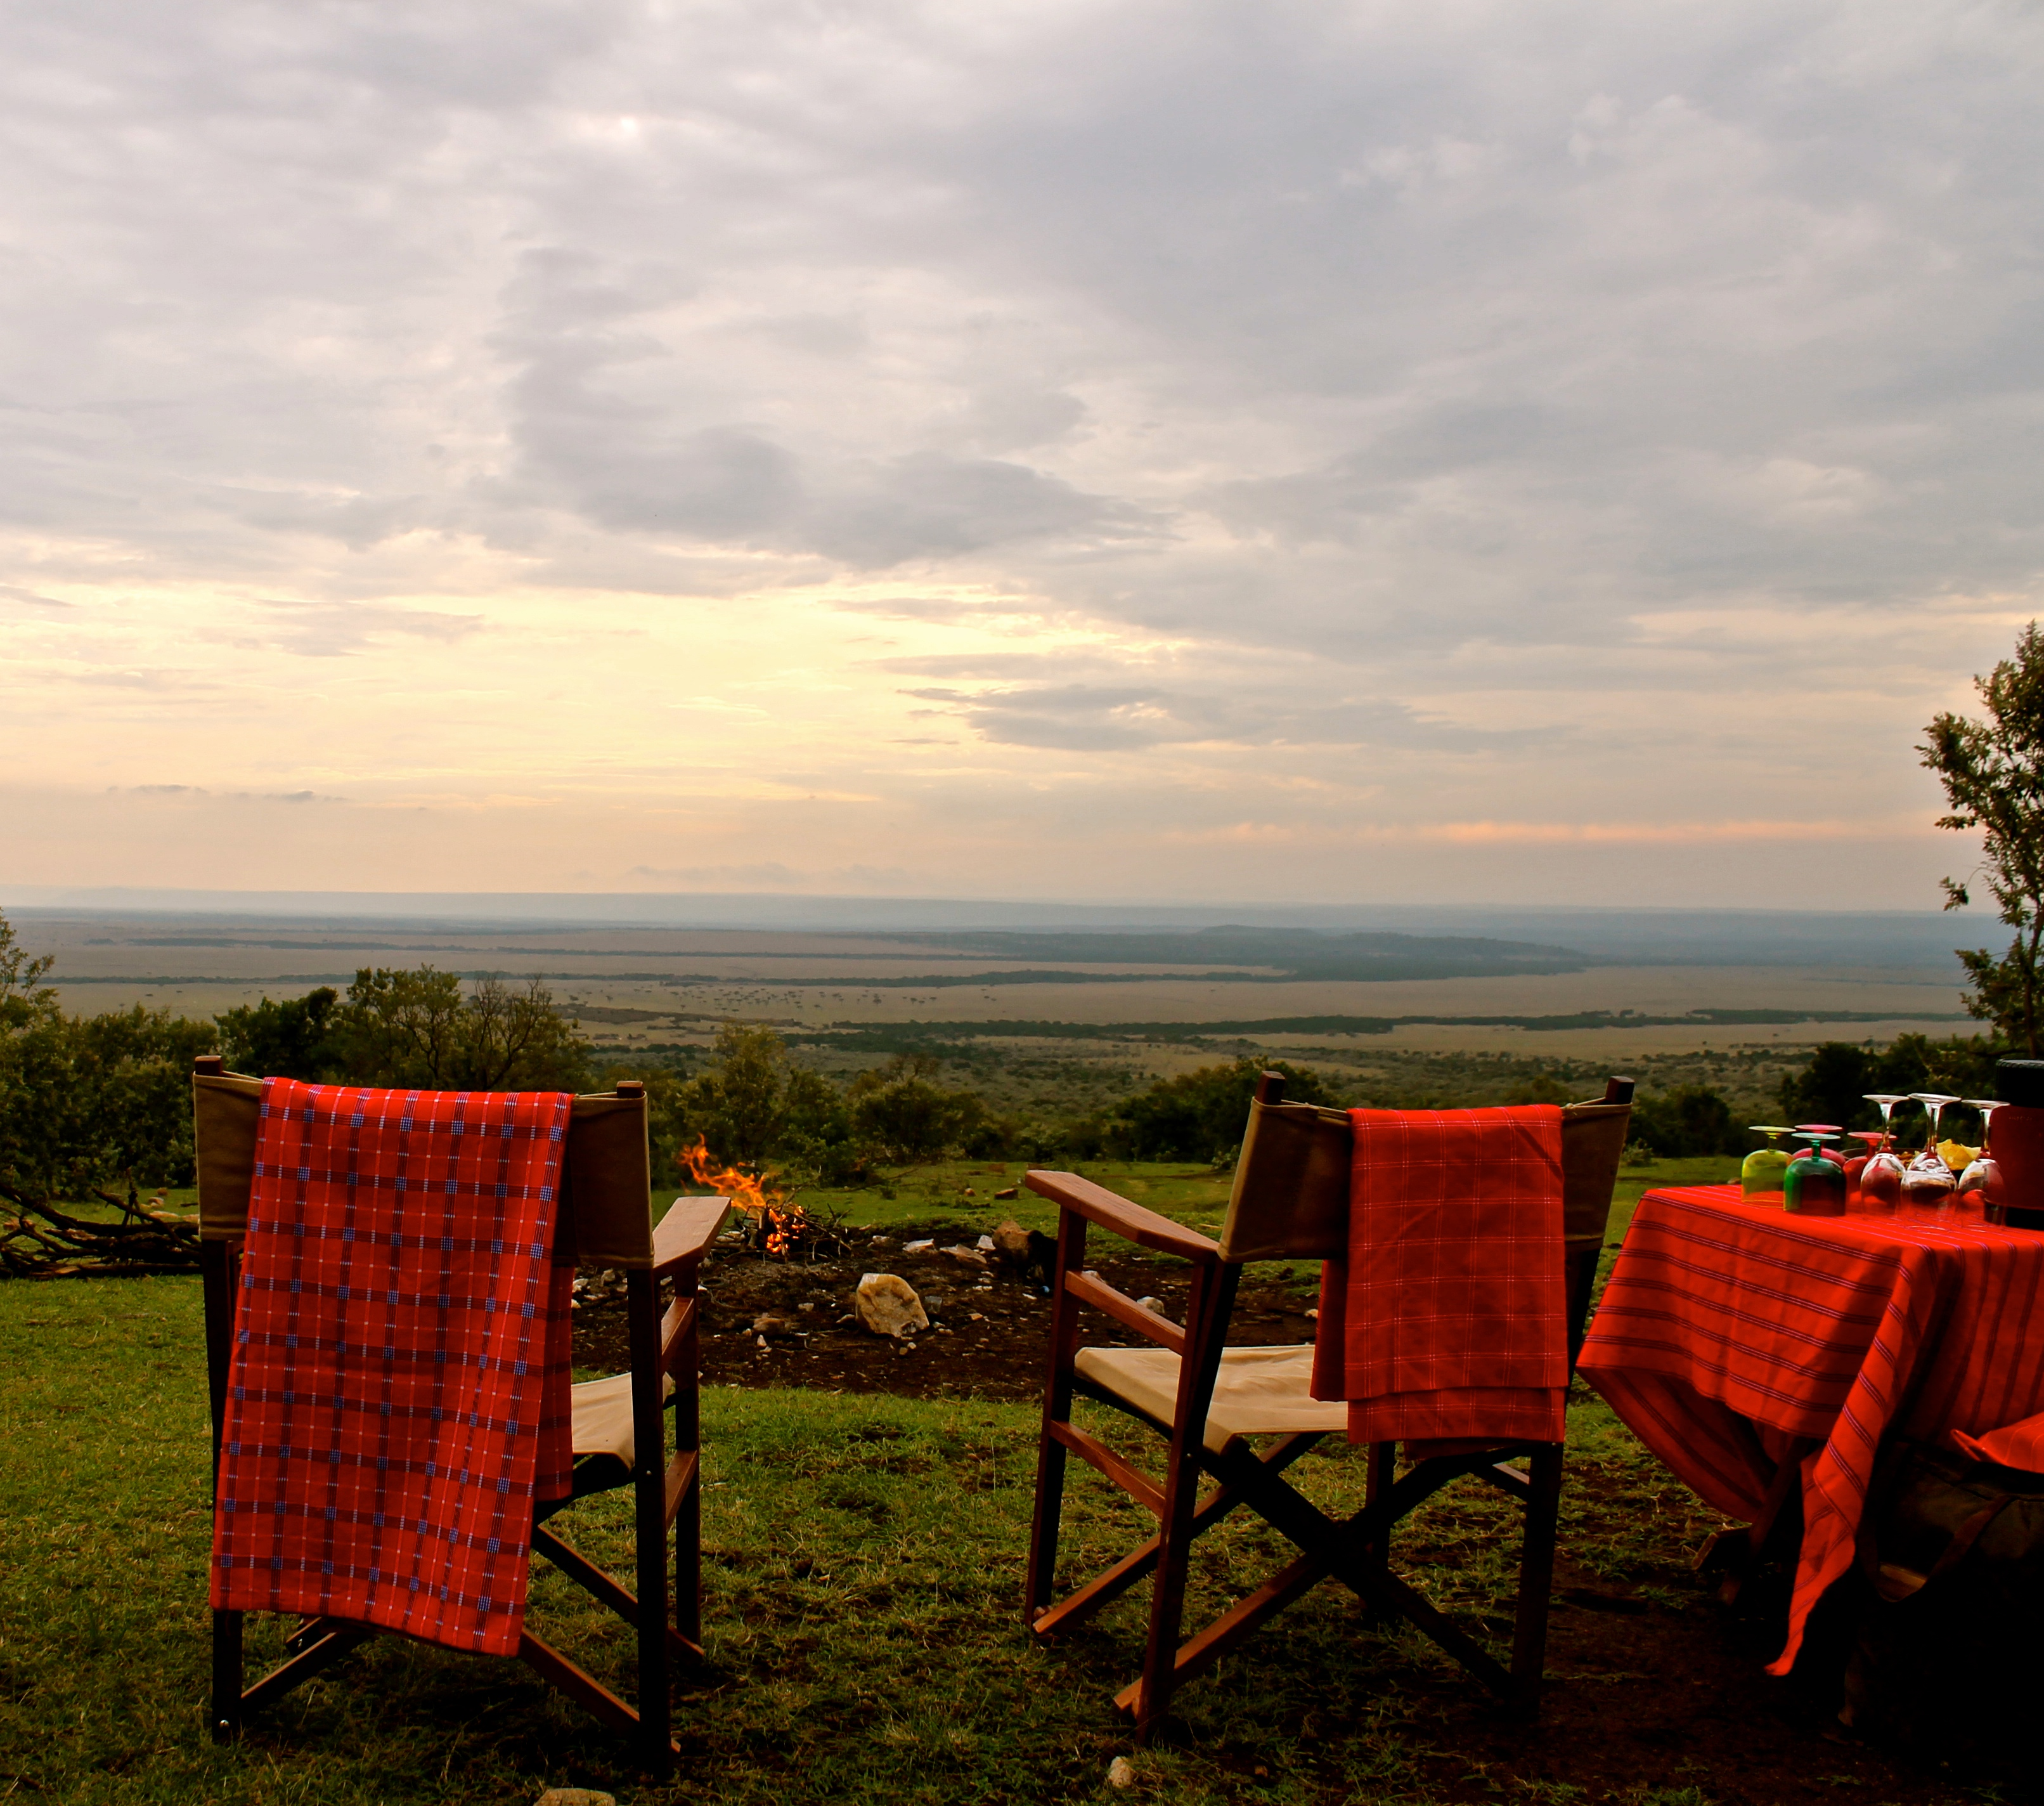 Sunset across the mara